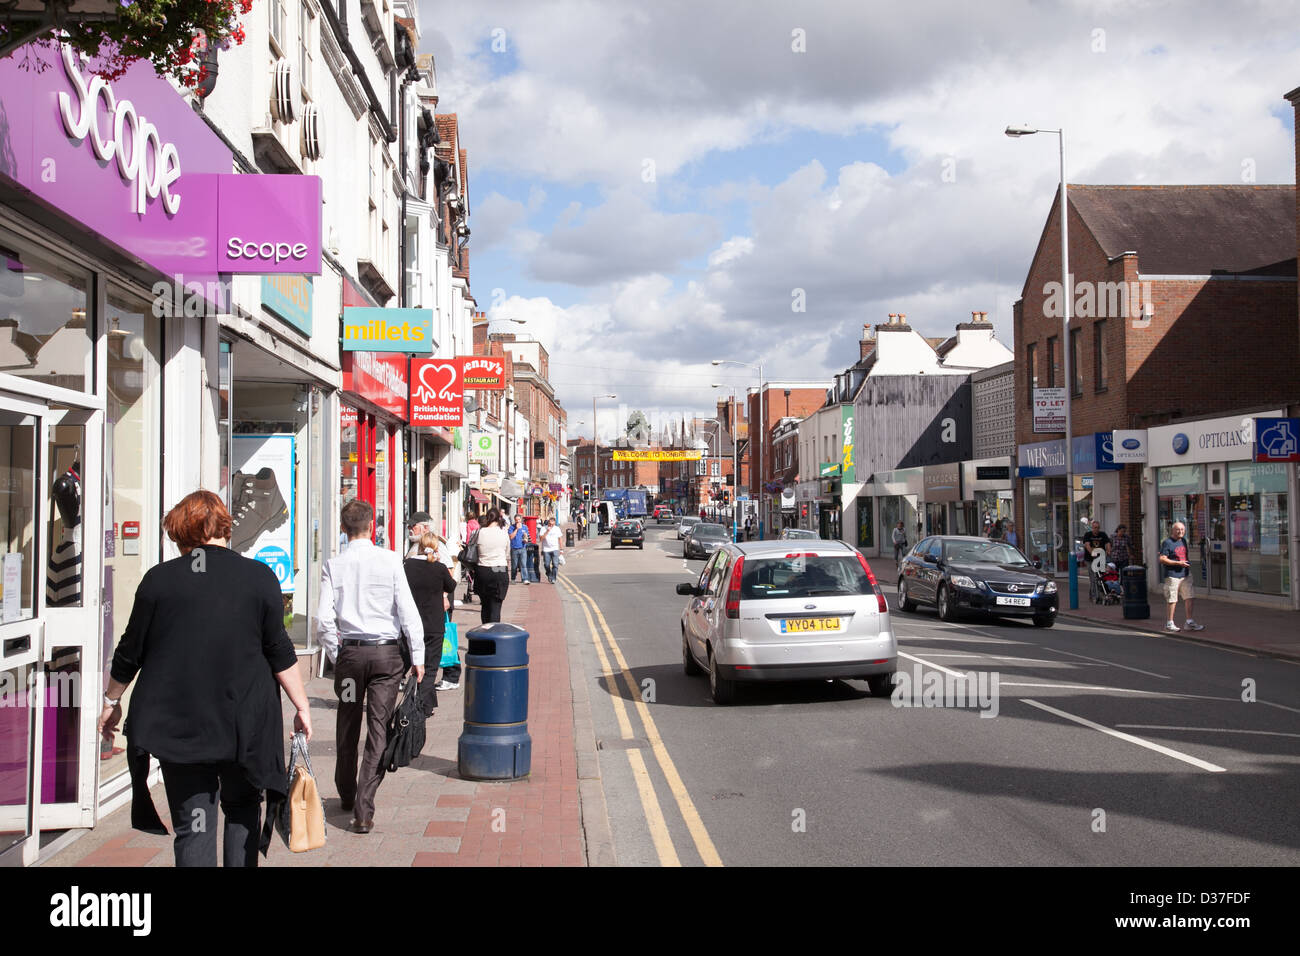 Scope charity shop in Tonbridge High Street Kent UK - Stock Image